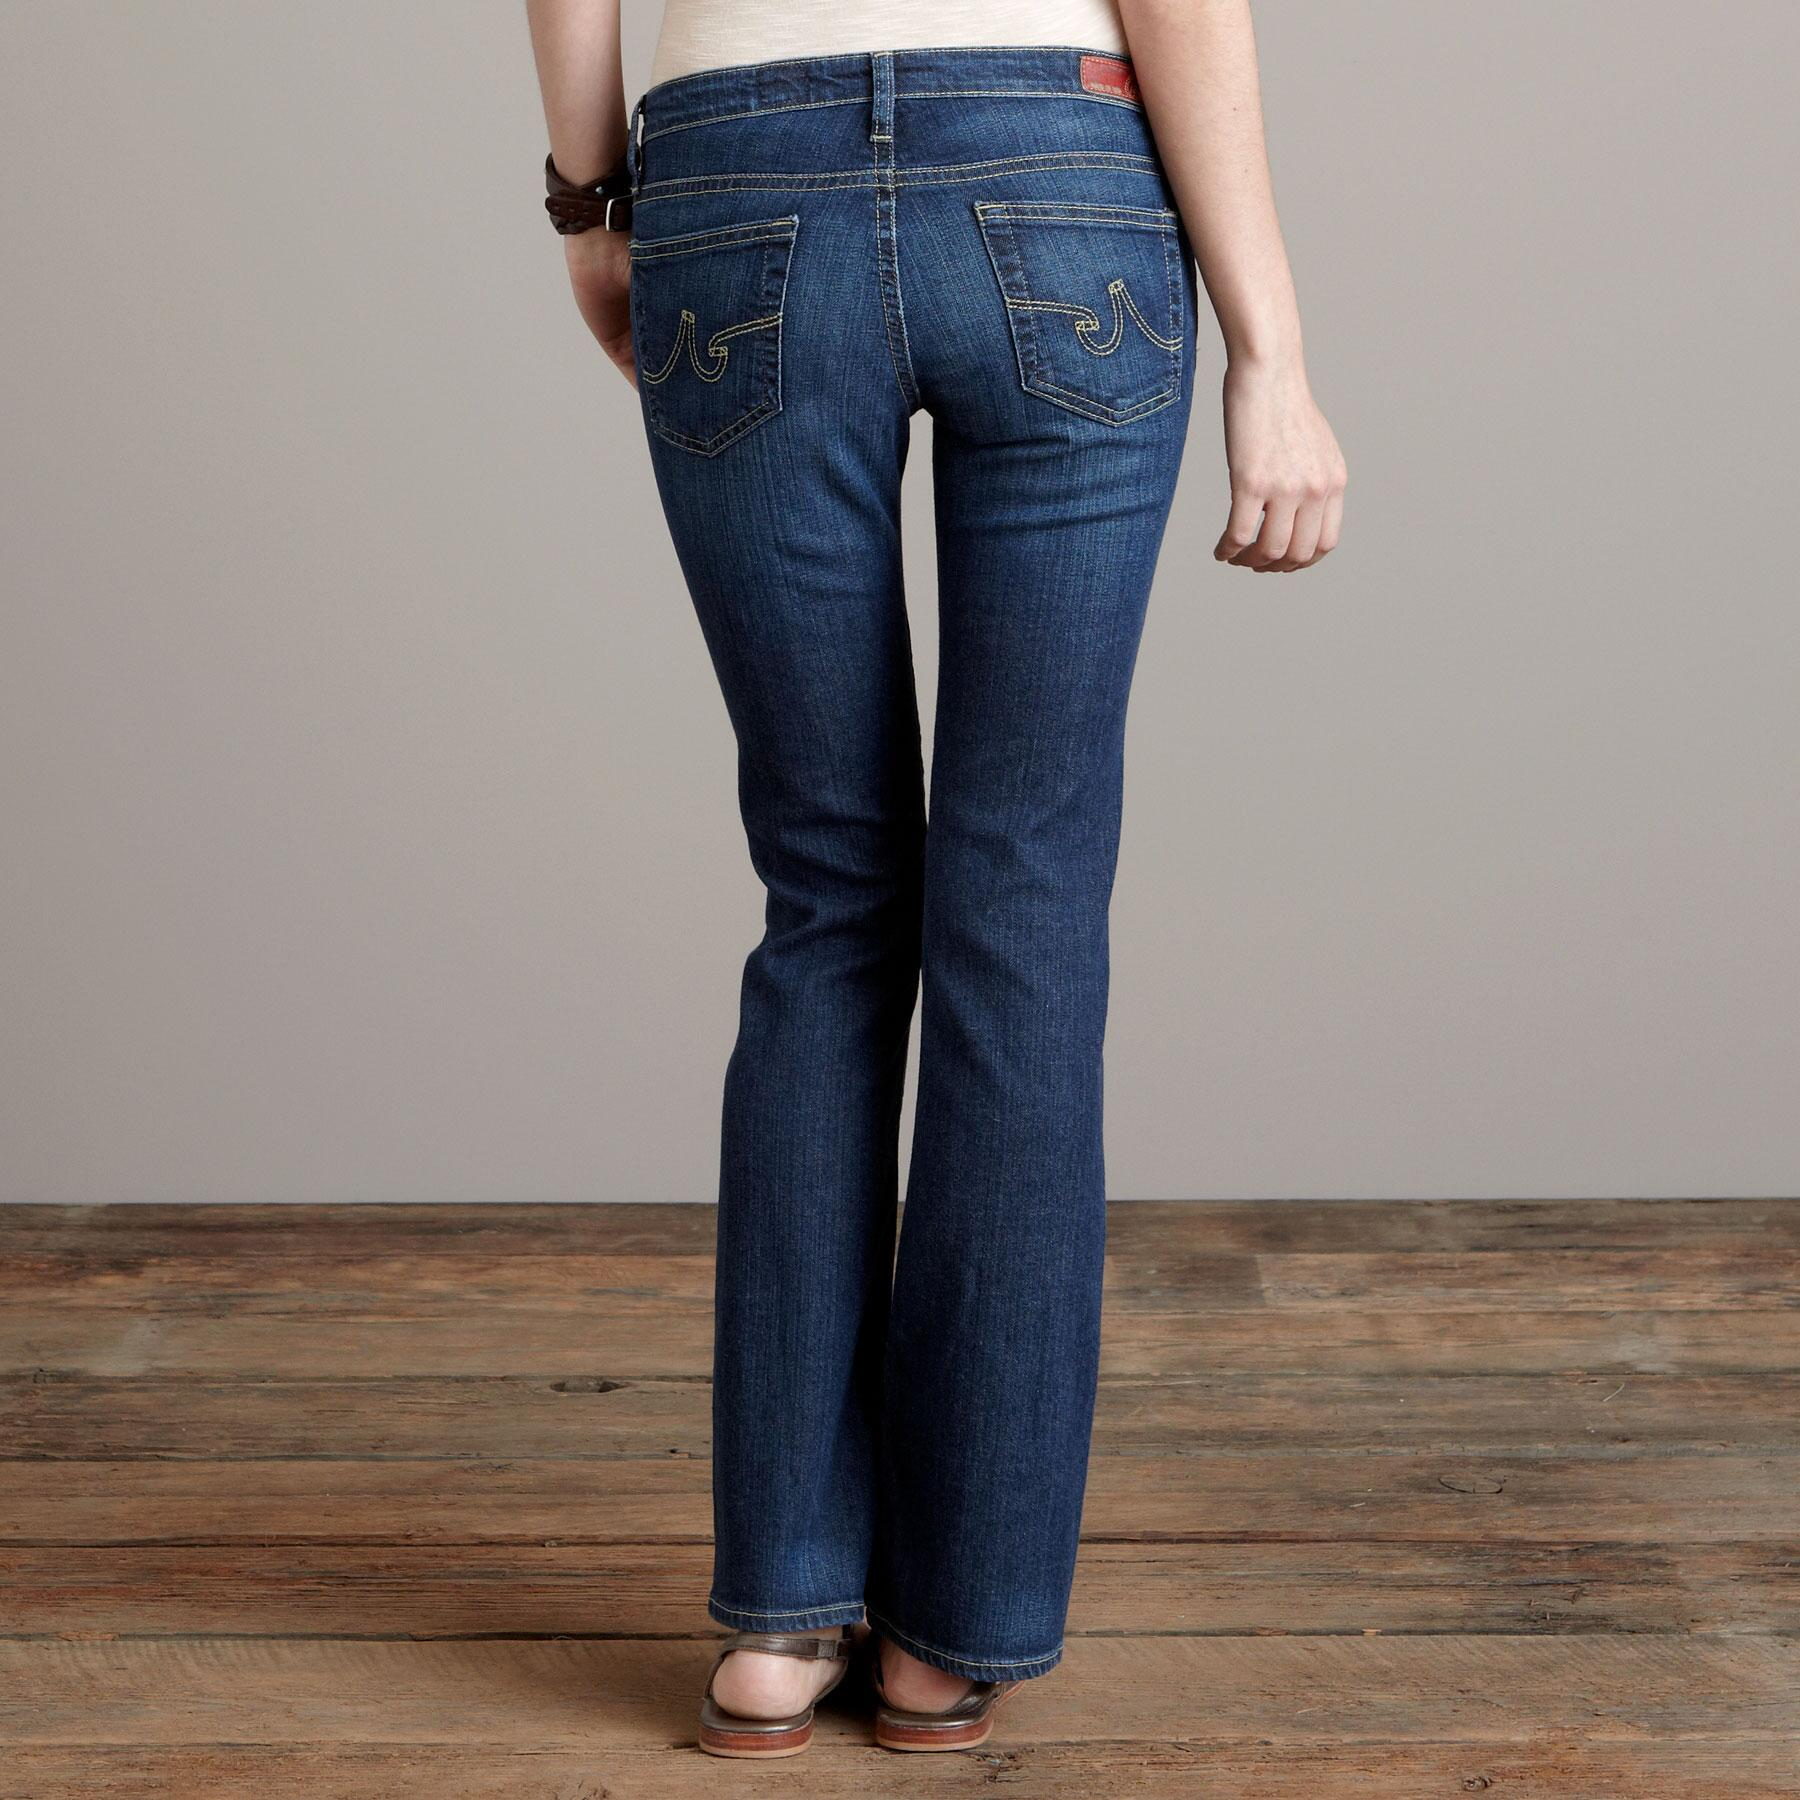 A G ANGELINA BOOTCUT IN GRANT WASH JEANS - PETITES: View 2